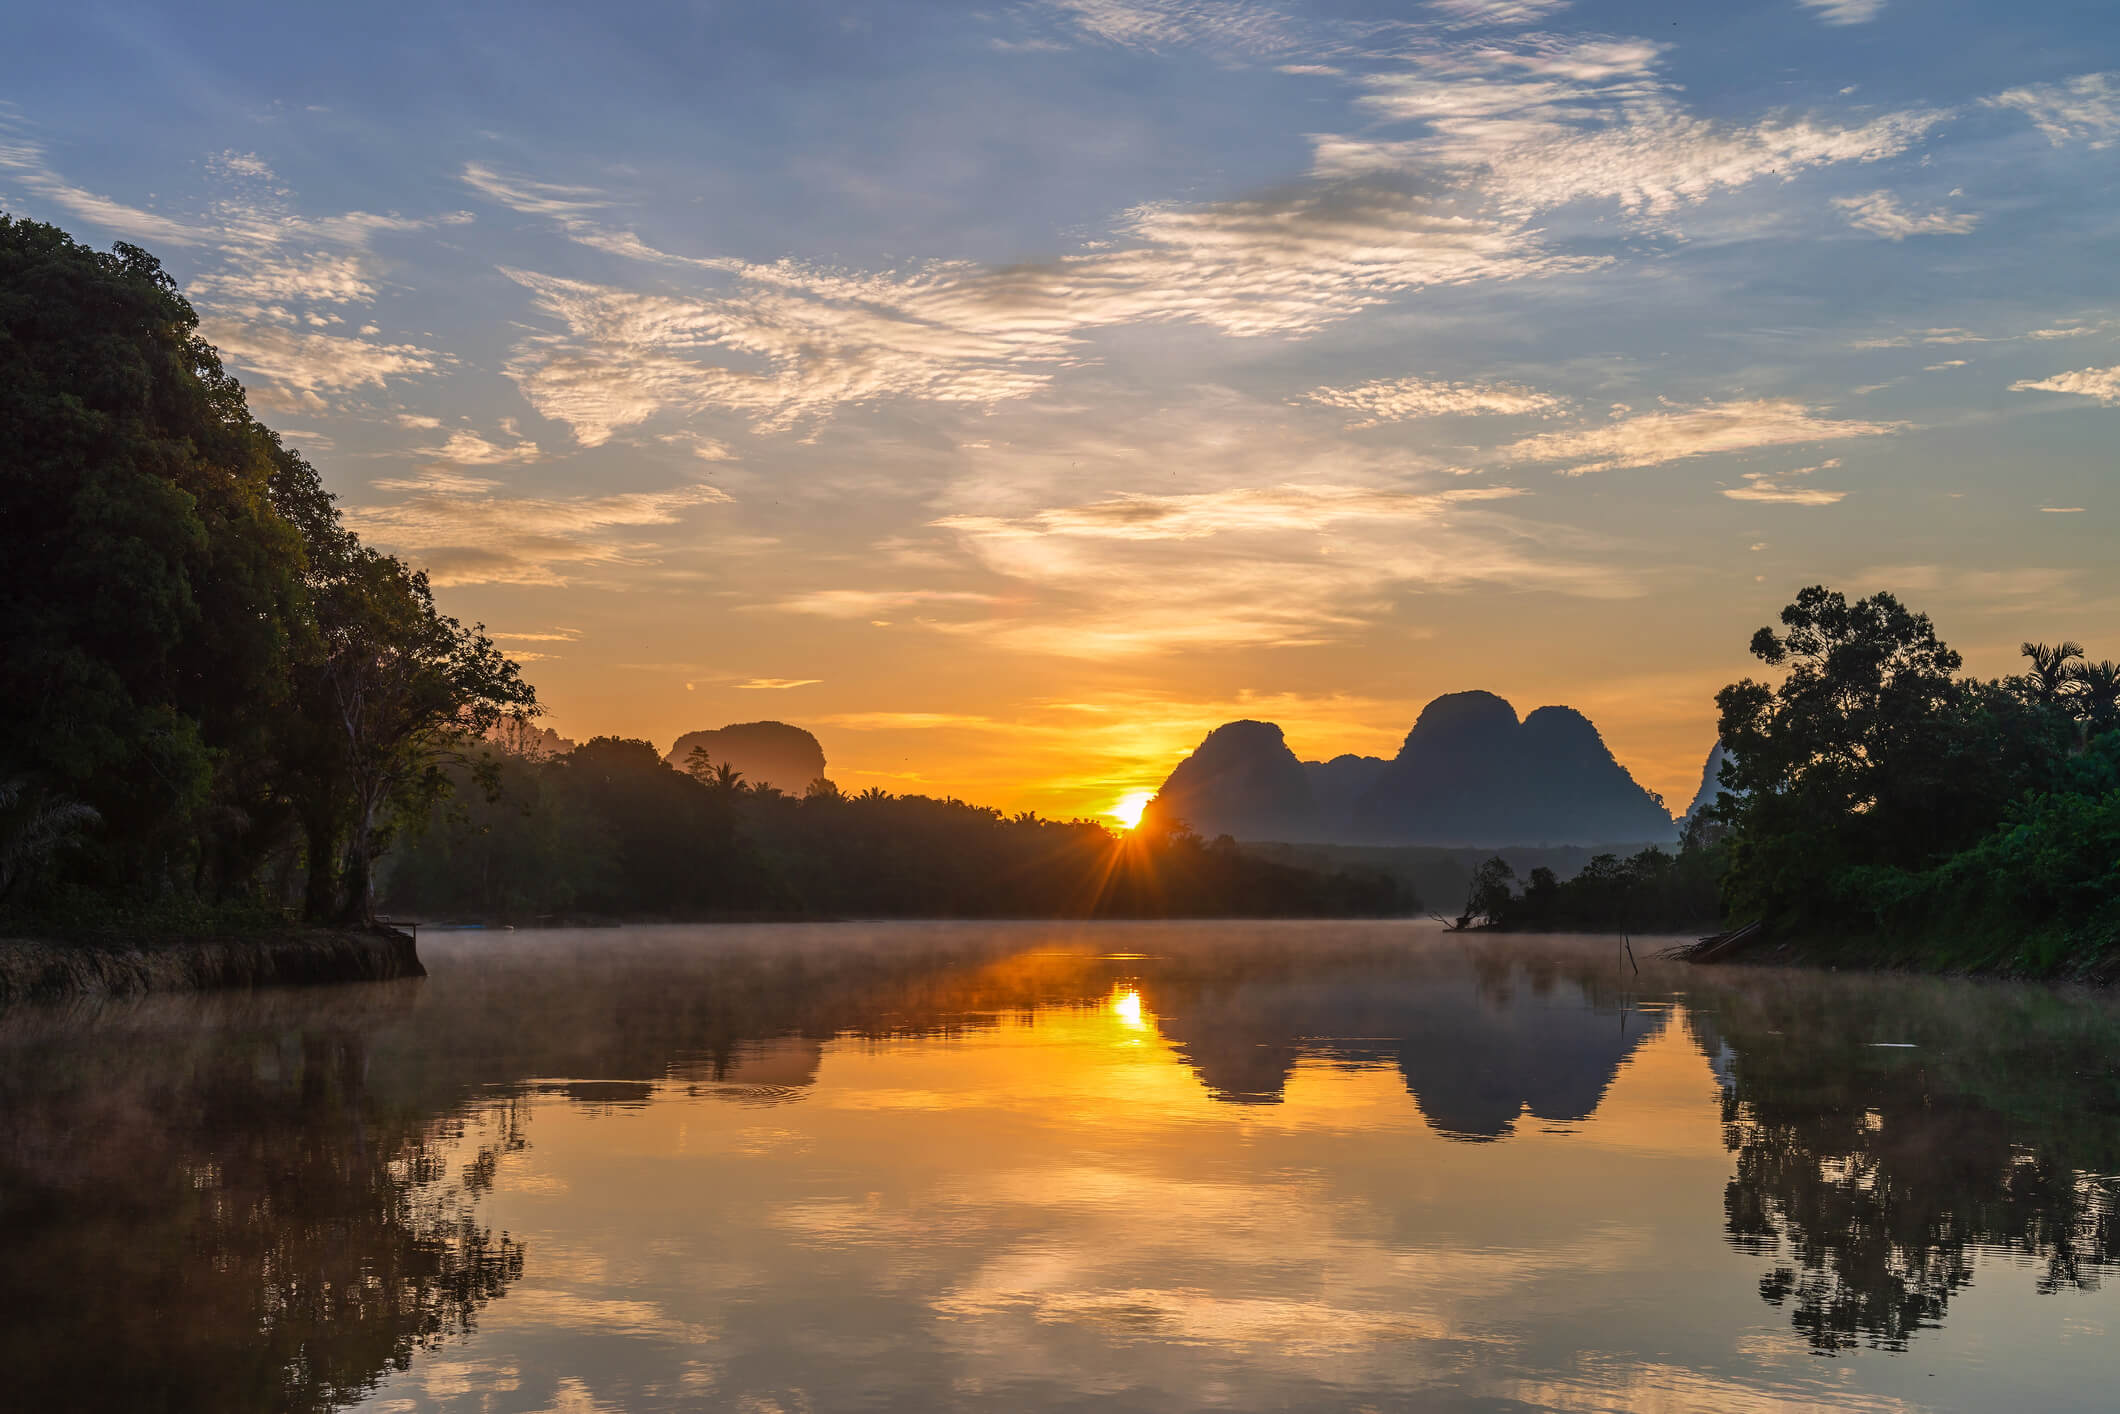 Sunrise over the lake at Nong Thale village - places to see in Krabi